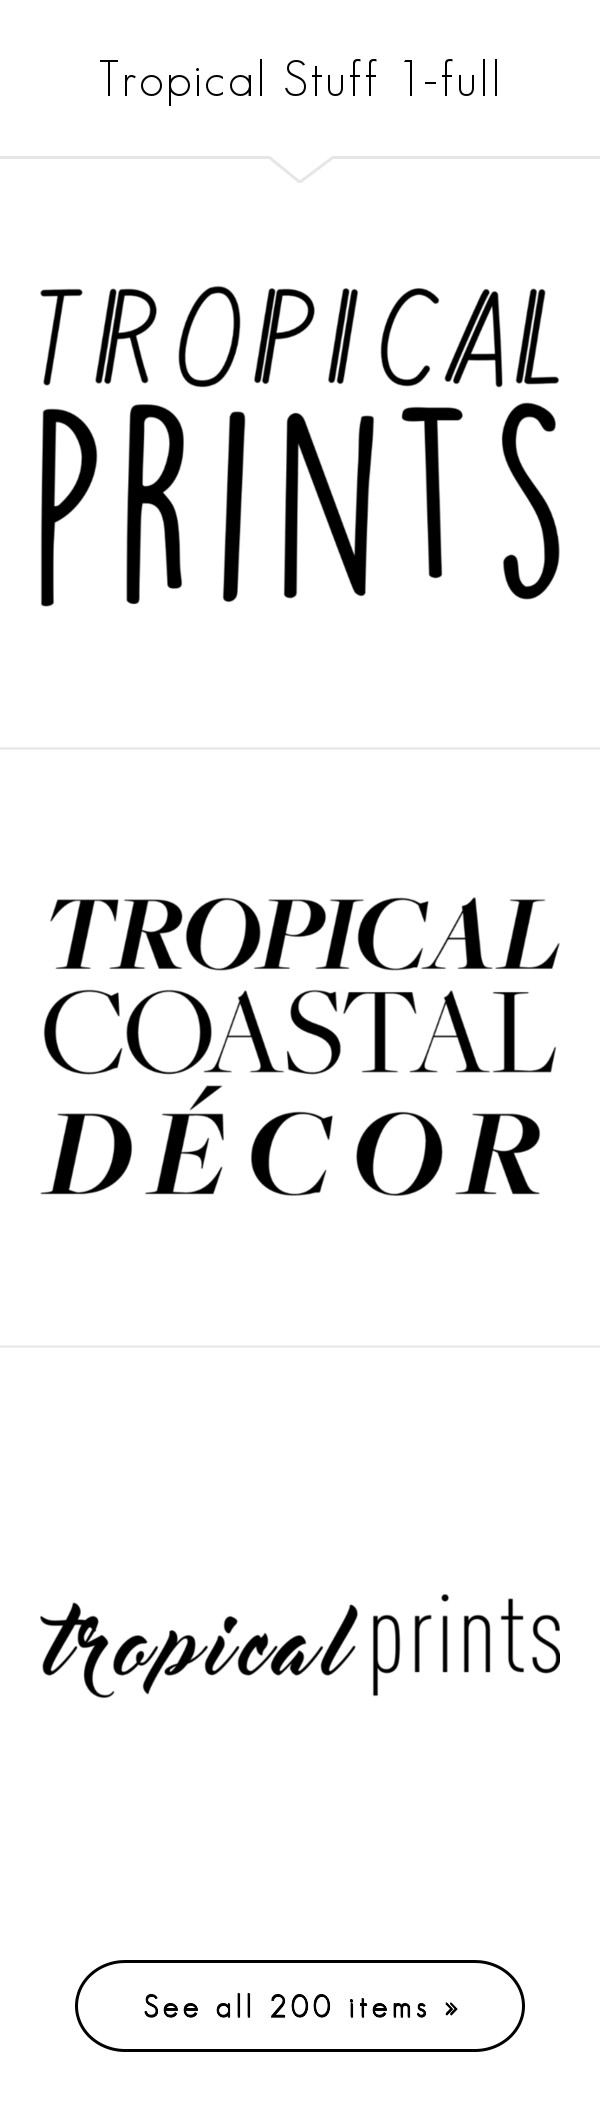 tropical stuff 1 full by franceseattle liked on polyvore